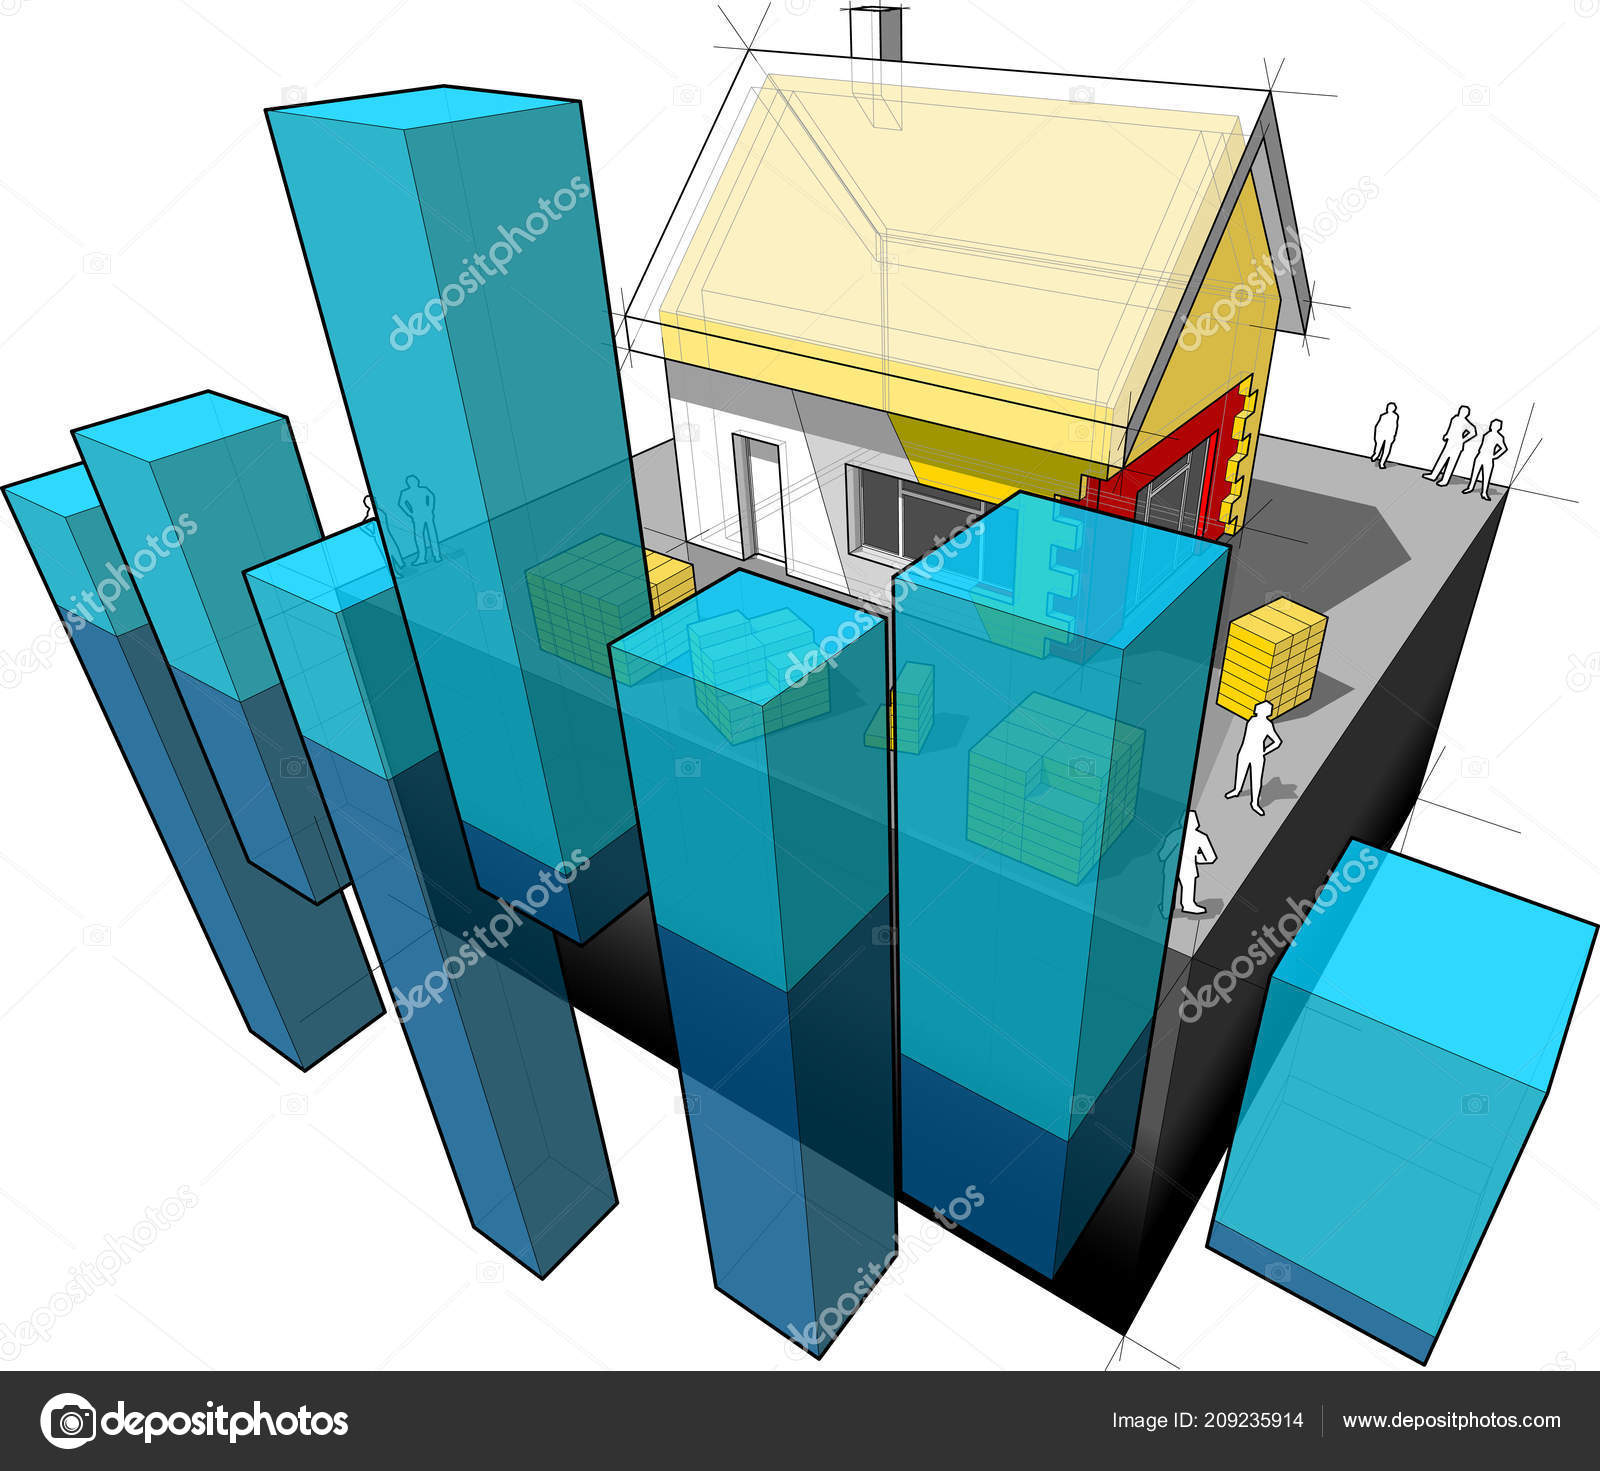 house insulation diagram citroen c4 boot wiring detached additional wall roof abstract business stock vector